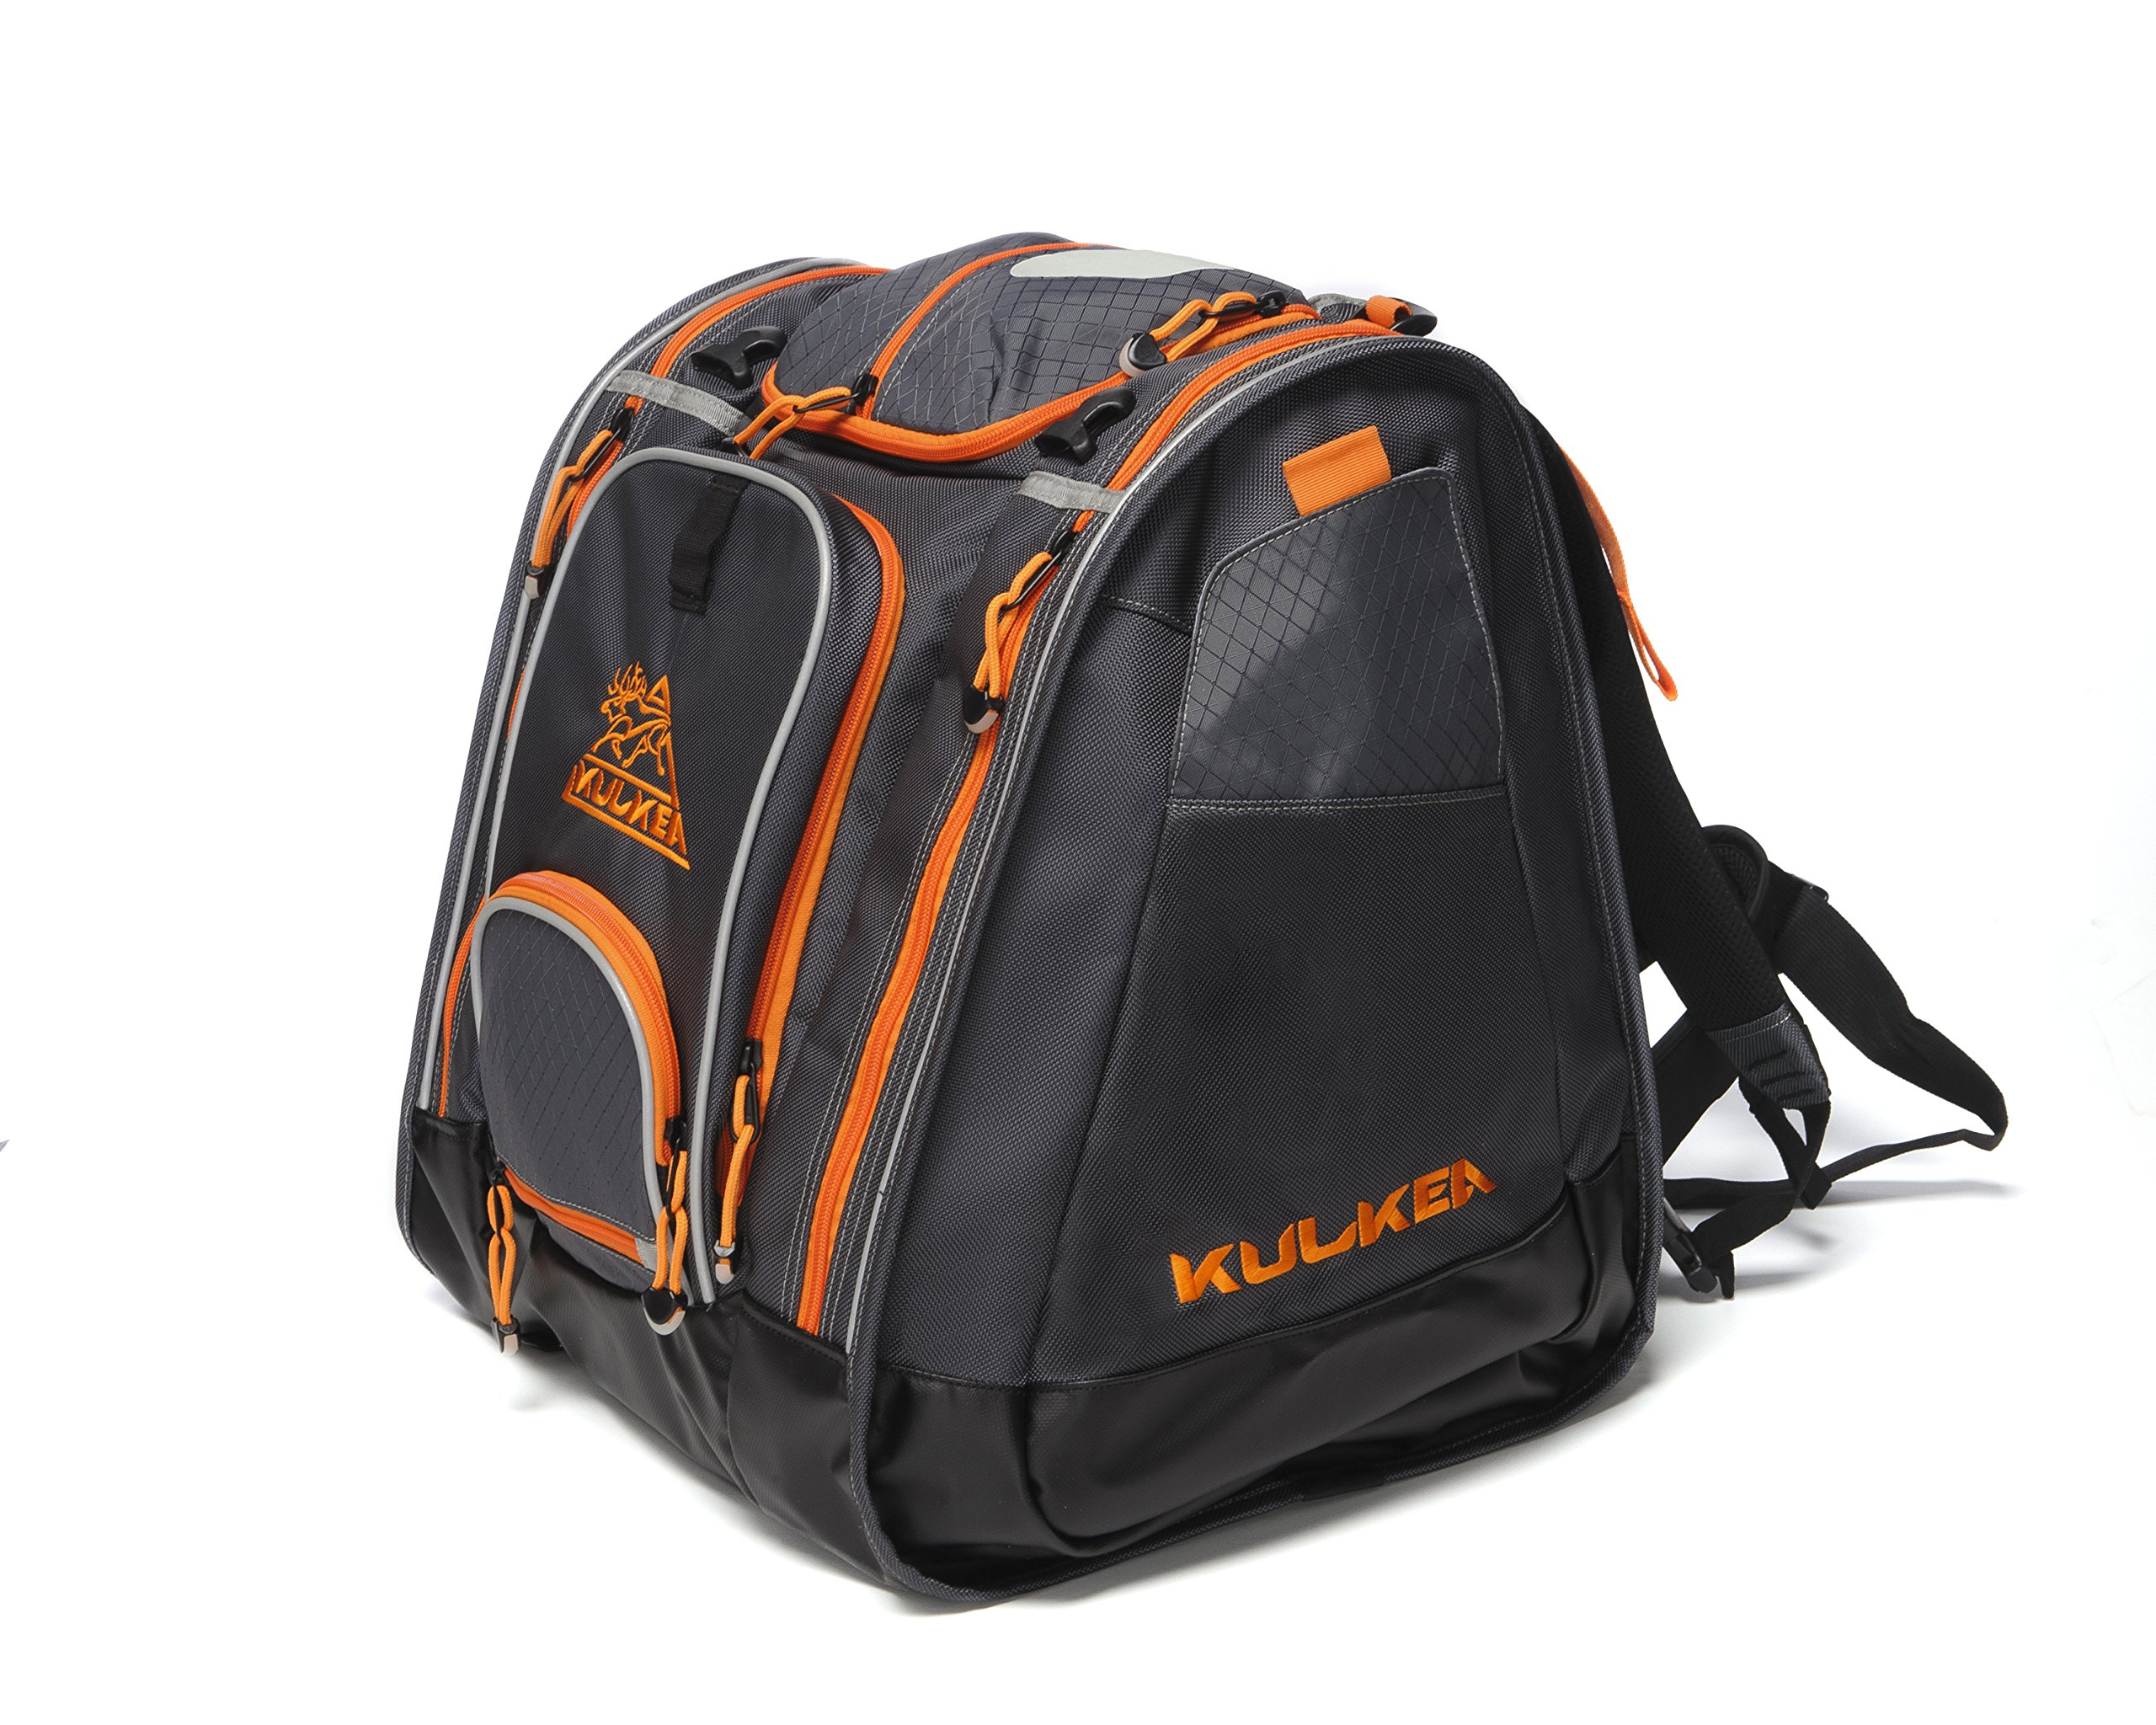 KULKEA Boot Trekker - Ski Boot Backpack, Grey/Black/Orange by KULKEA